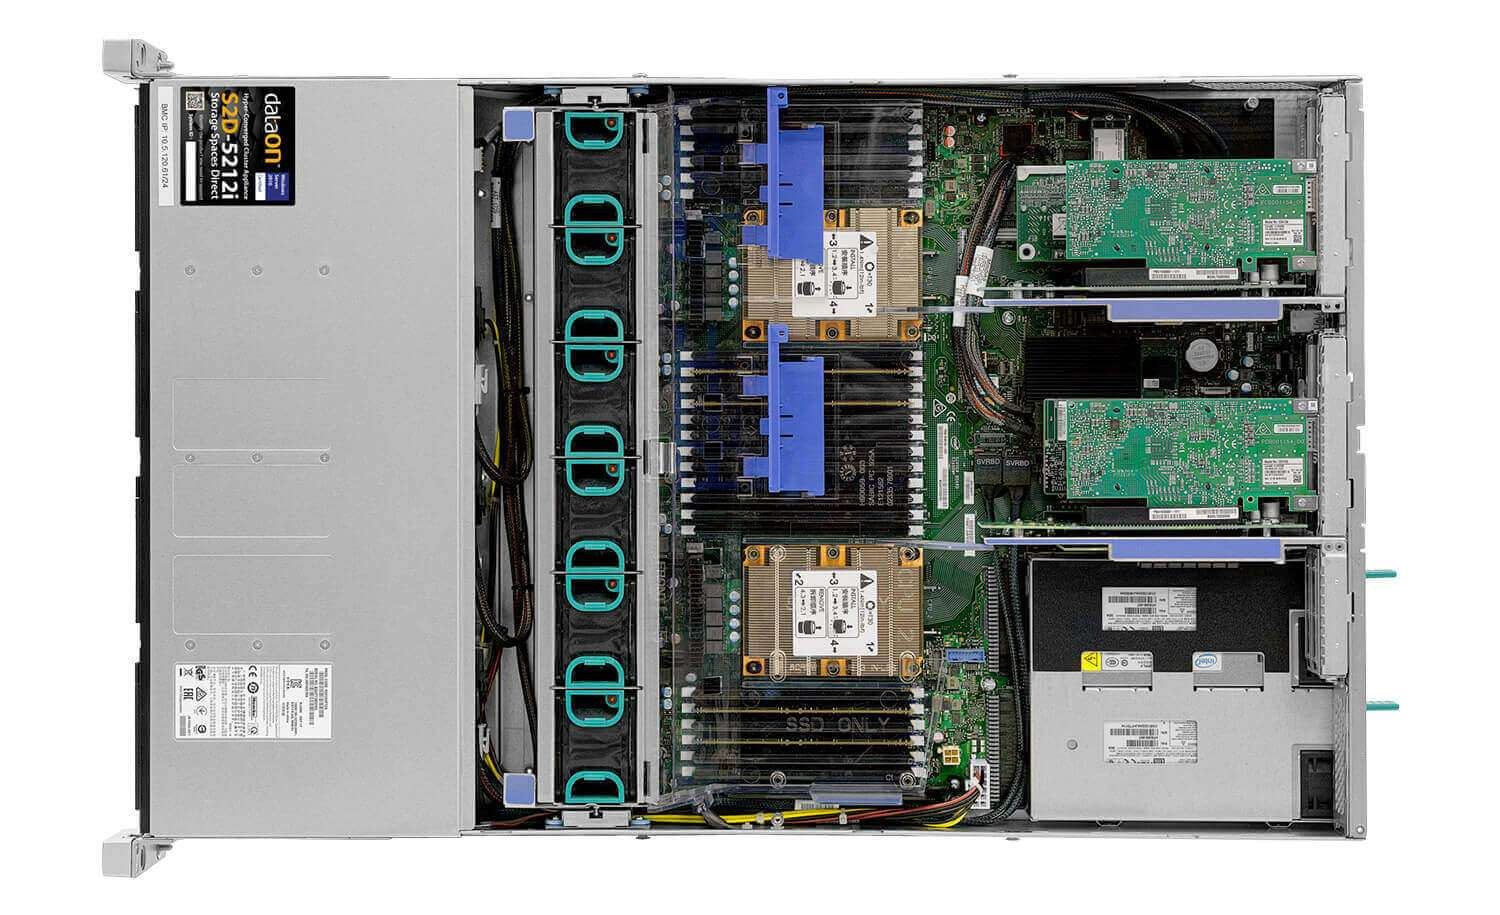 allsystems-producten-hyperconverged-systems-DataON_S2D-5224i_Top_View